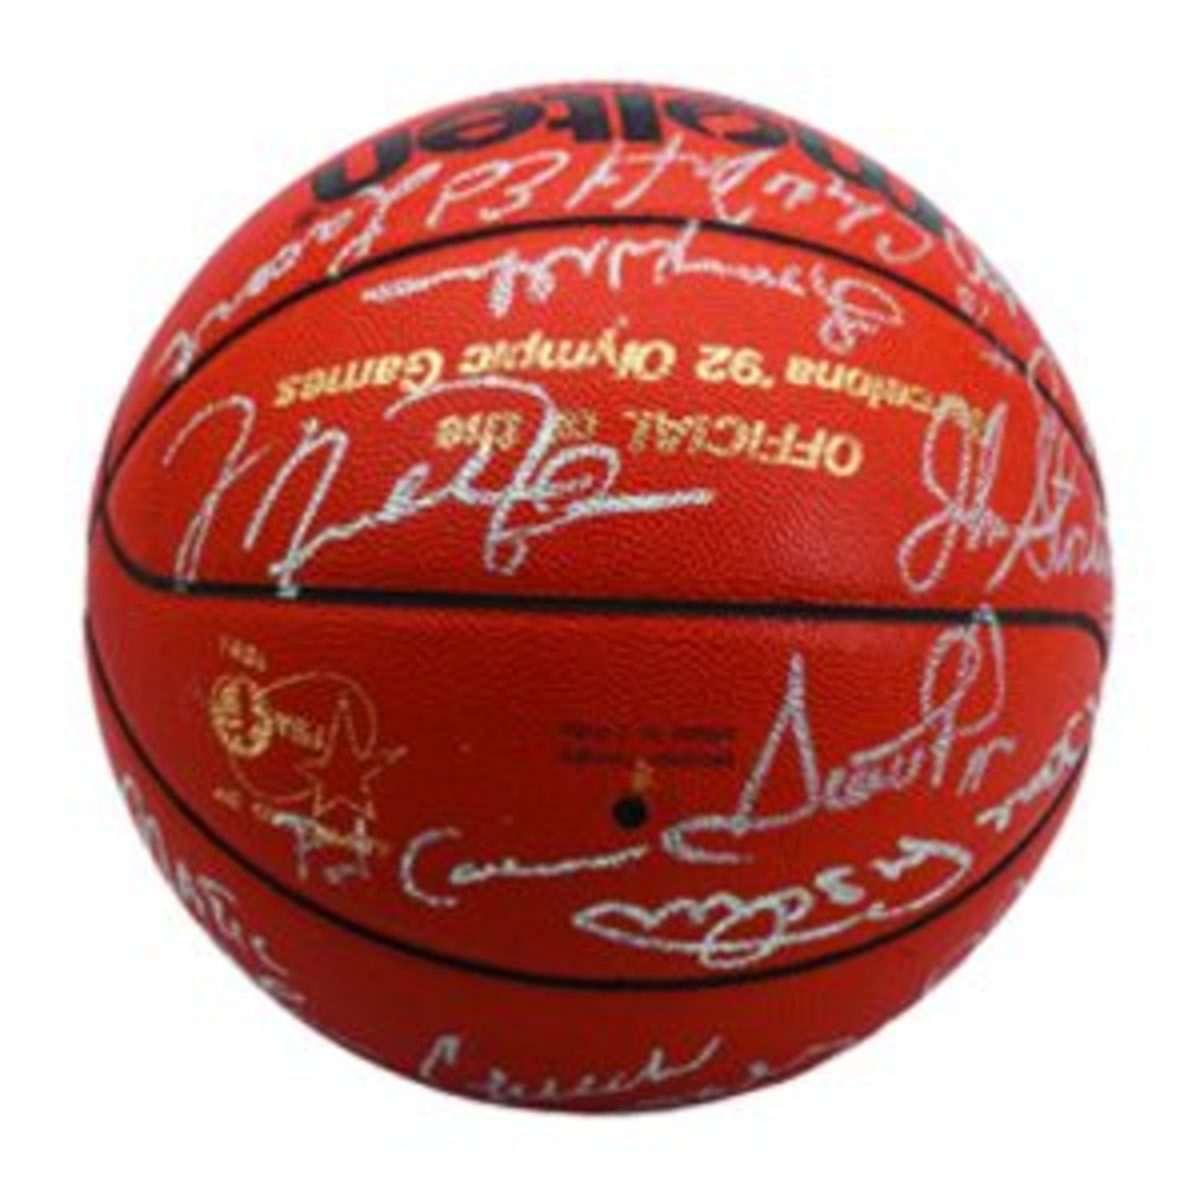 a '92 Dream Team multi-signed Official Molten Barcelona Olympic Basketball sporting 18 signatures including all players and coaches.